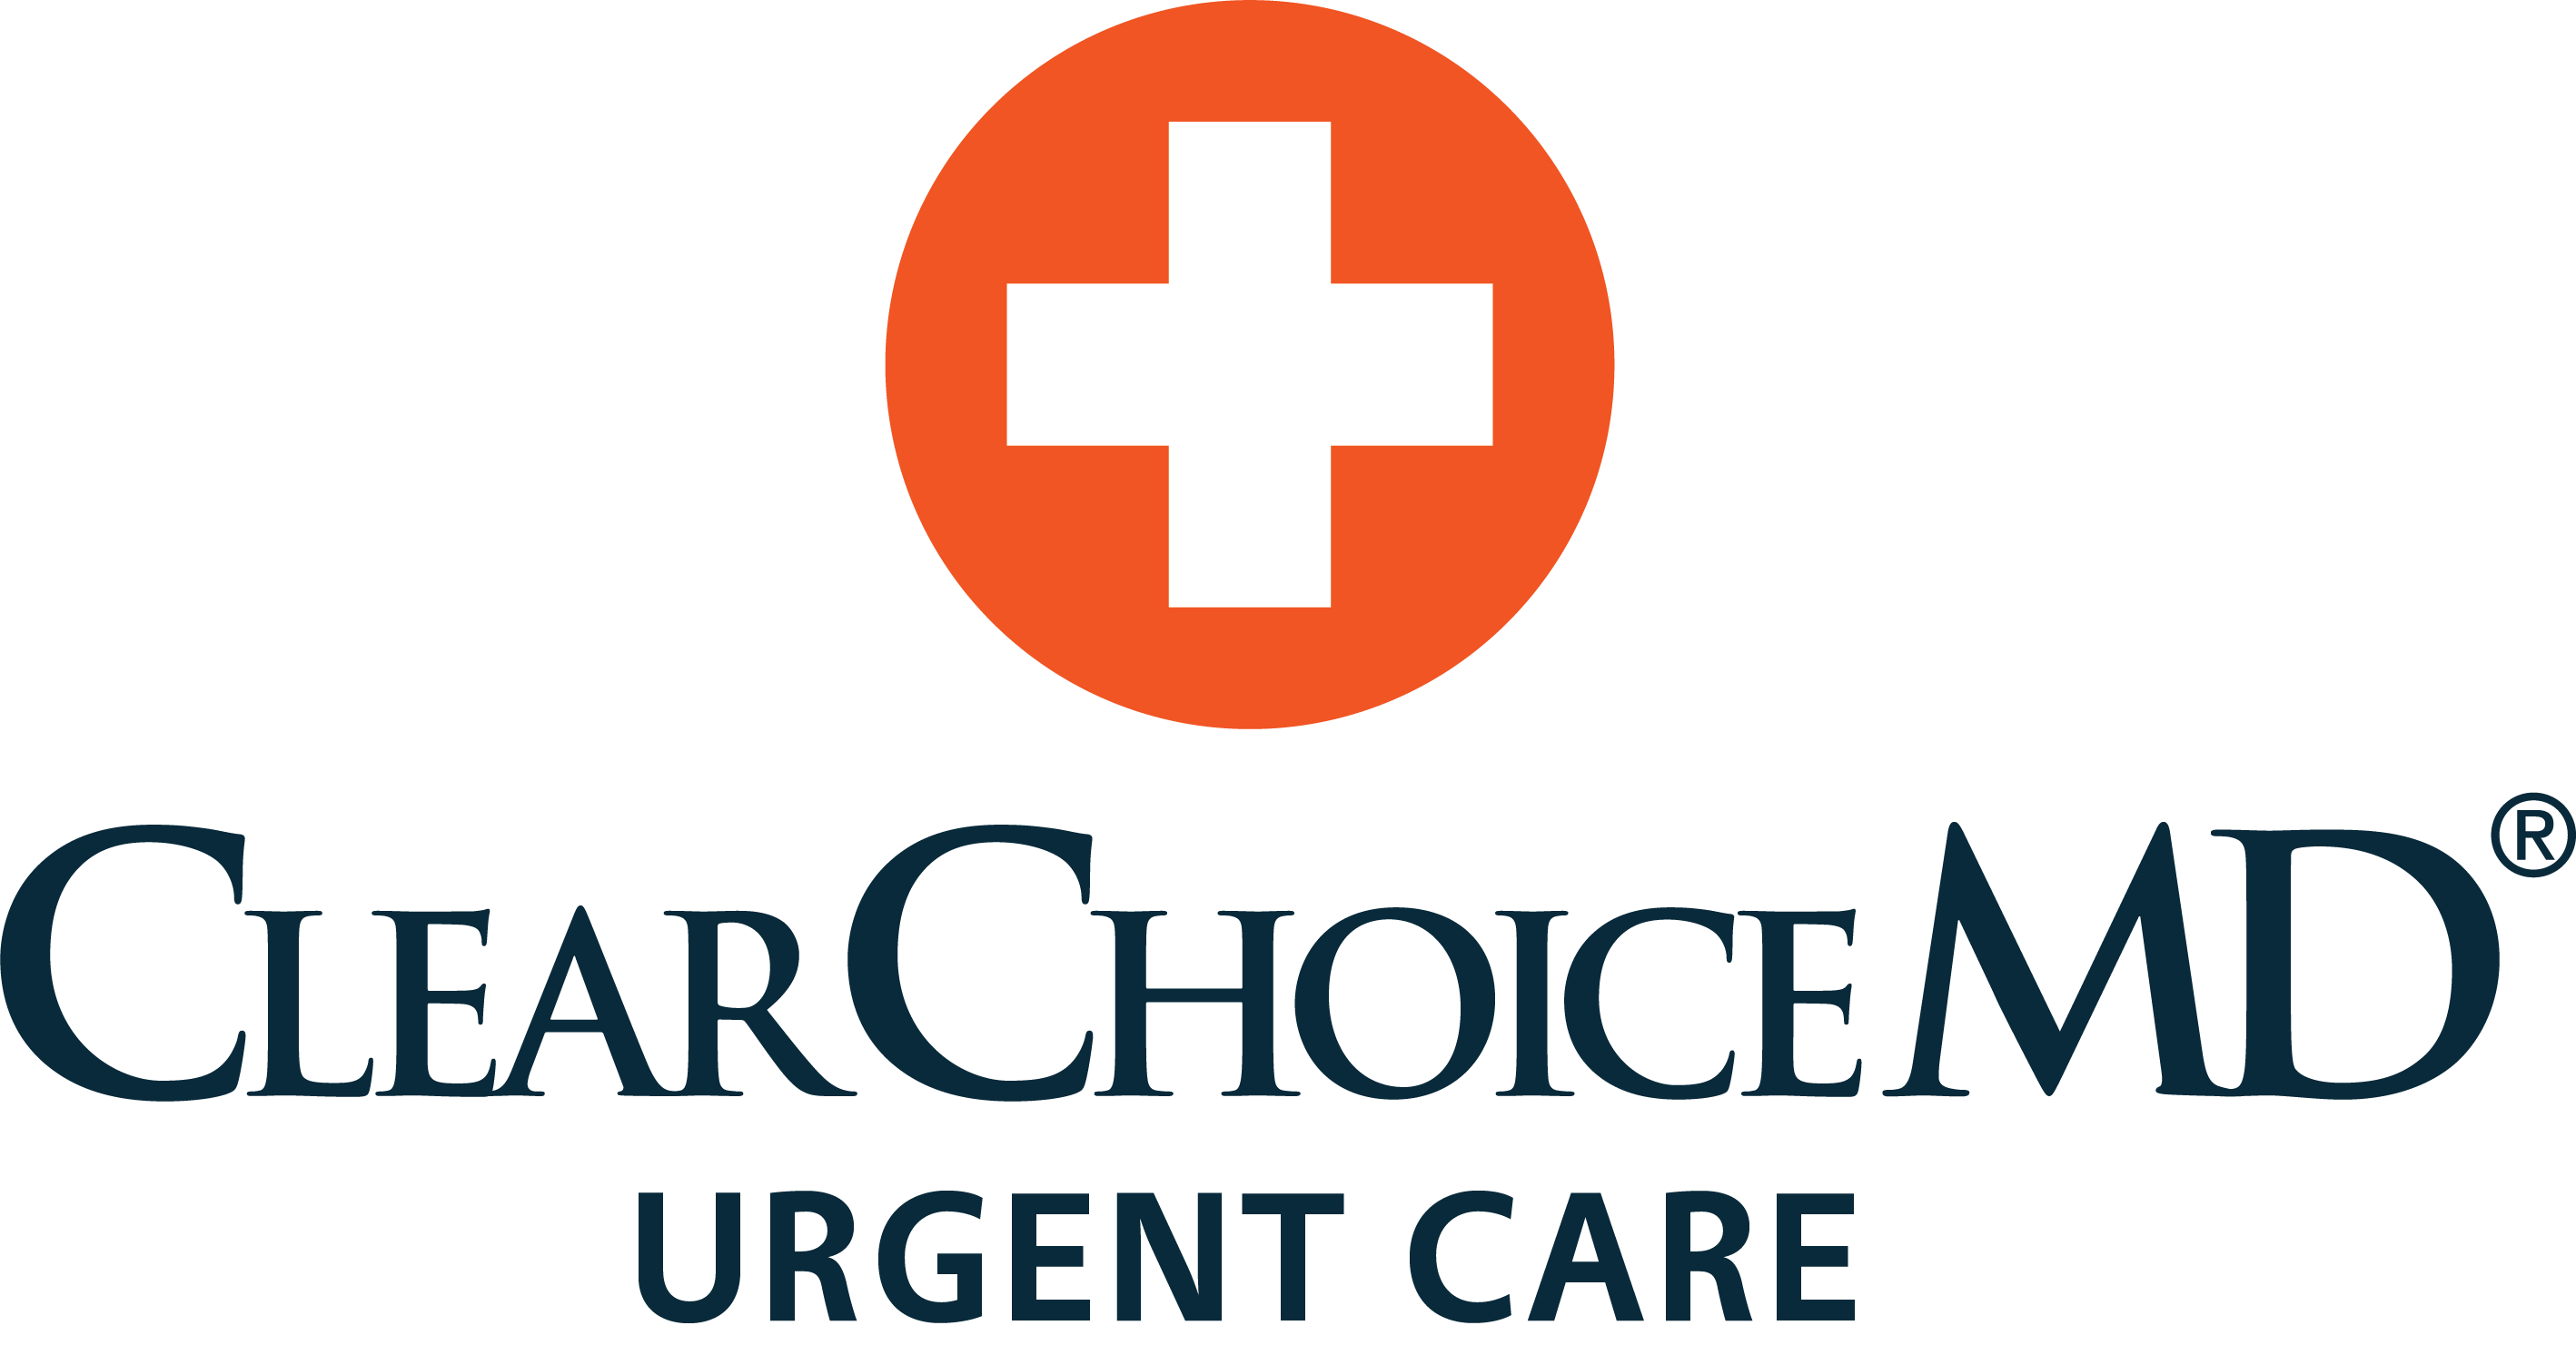 ClearChoiceMD Urgent Care - Portsmouth, NH Logo